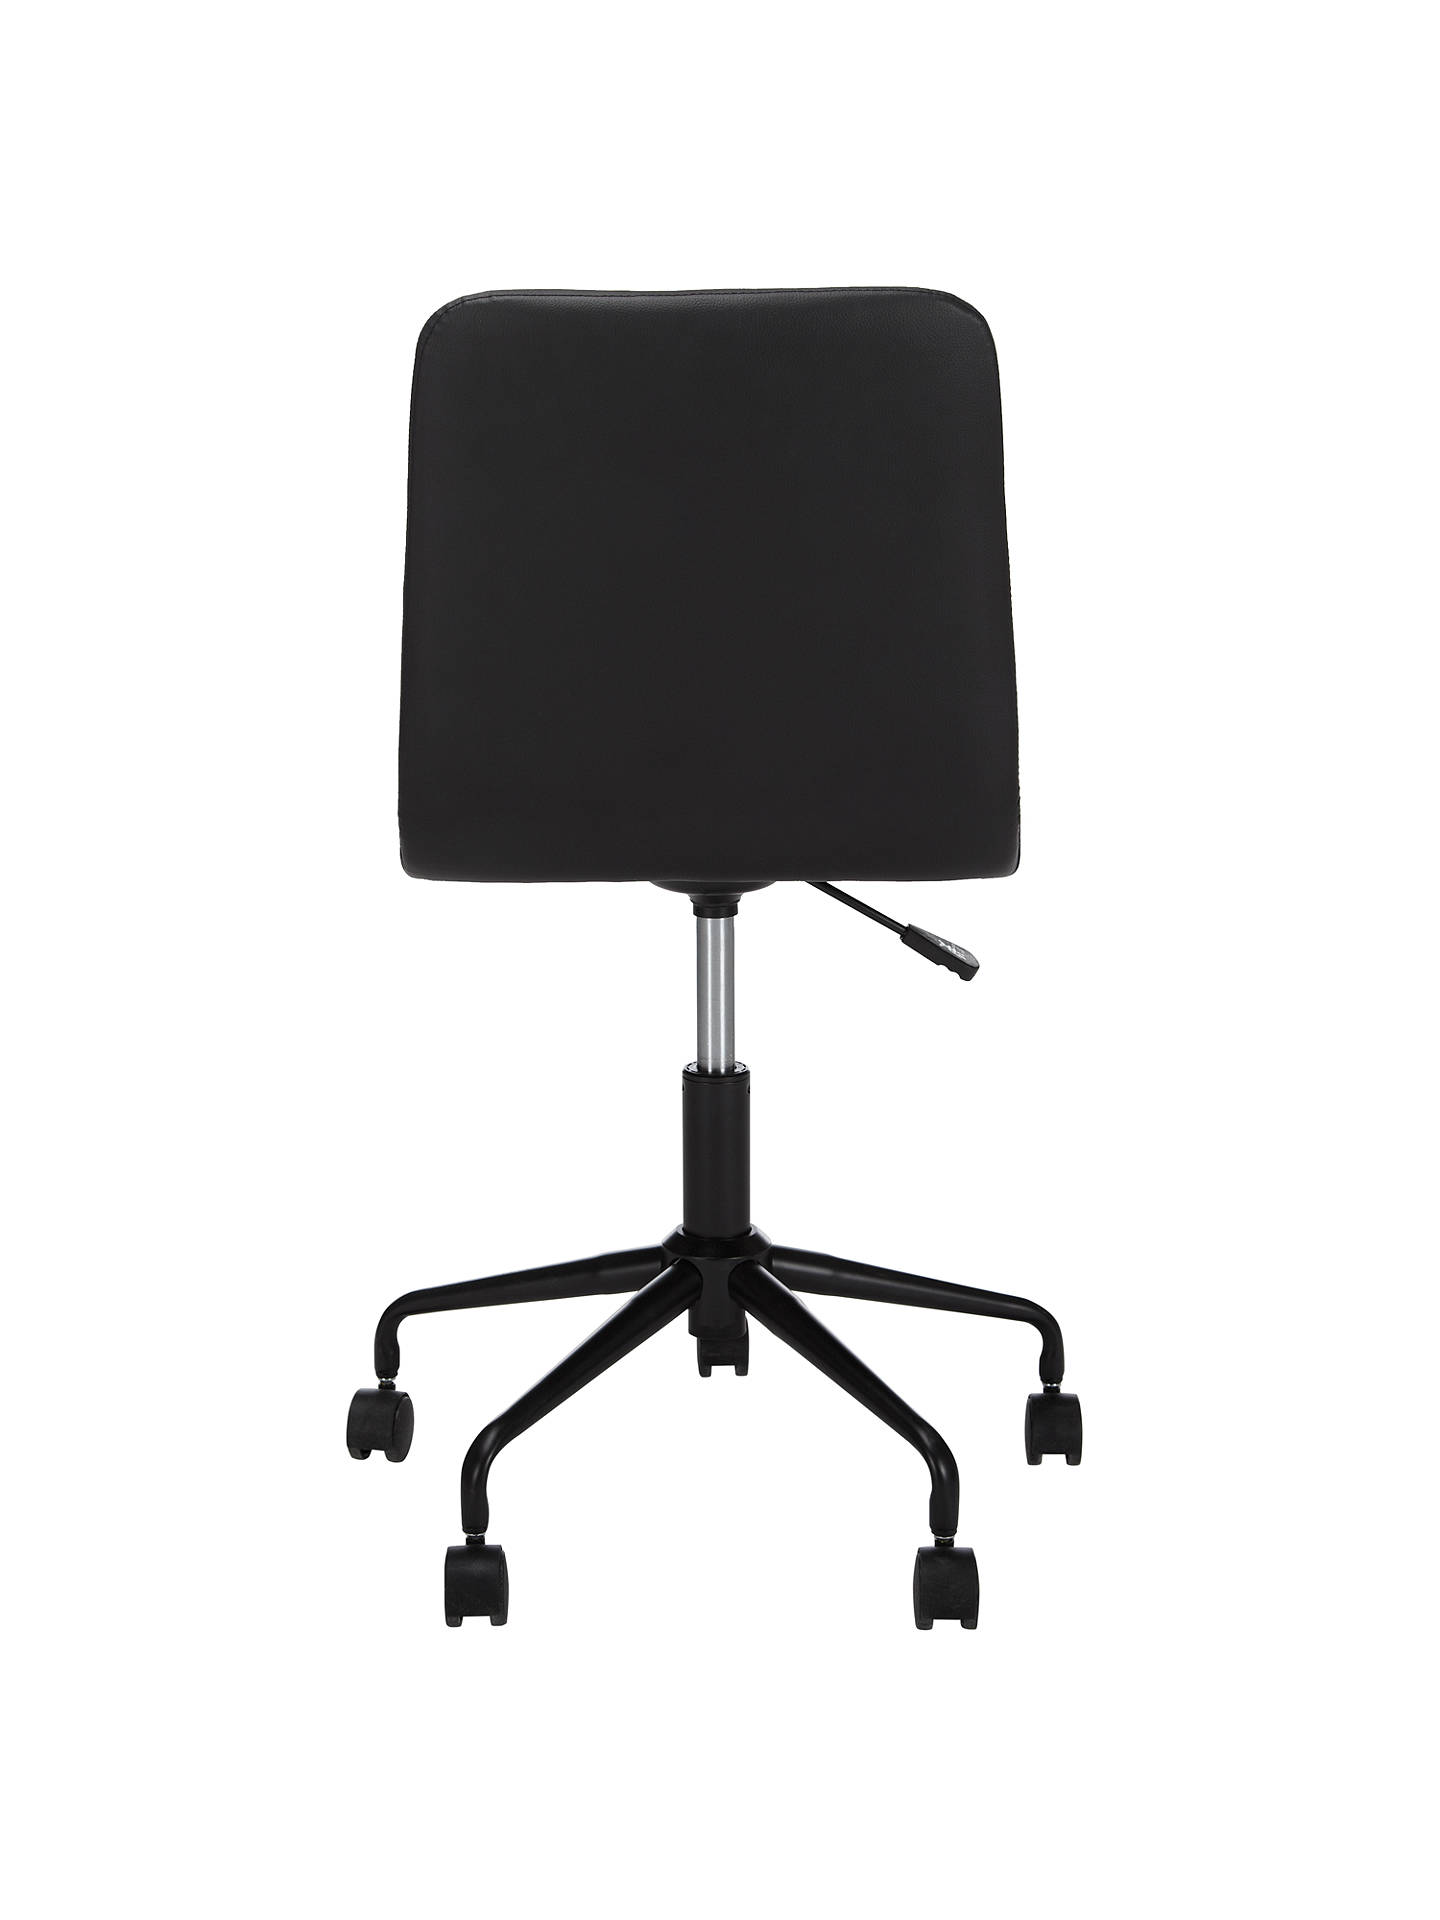 House by john lewis nova office chair at john lewis partners for John lewis home design service reviews